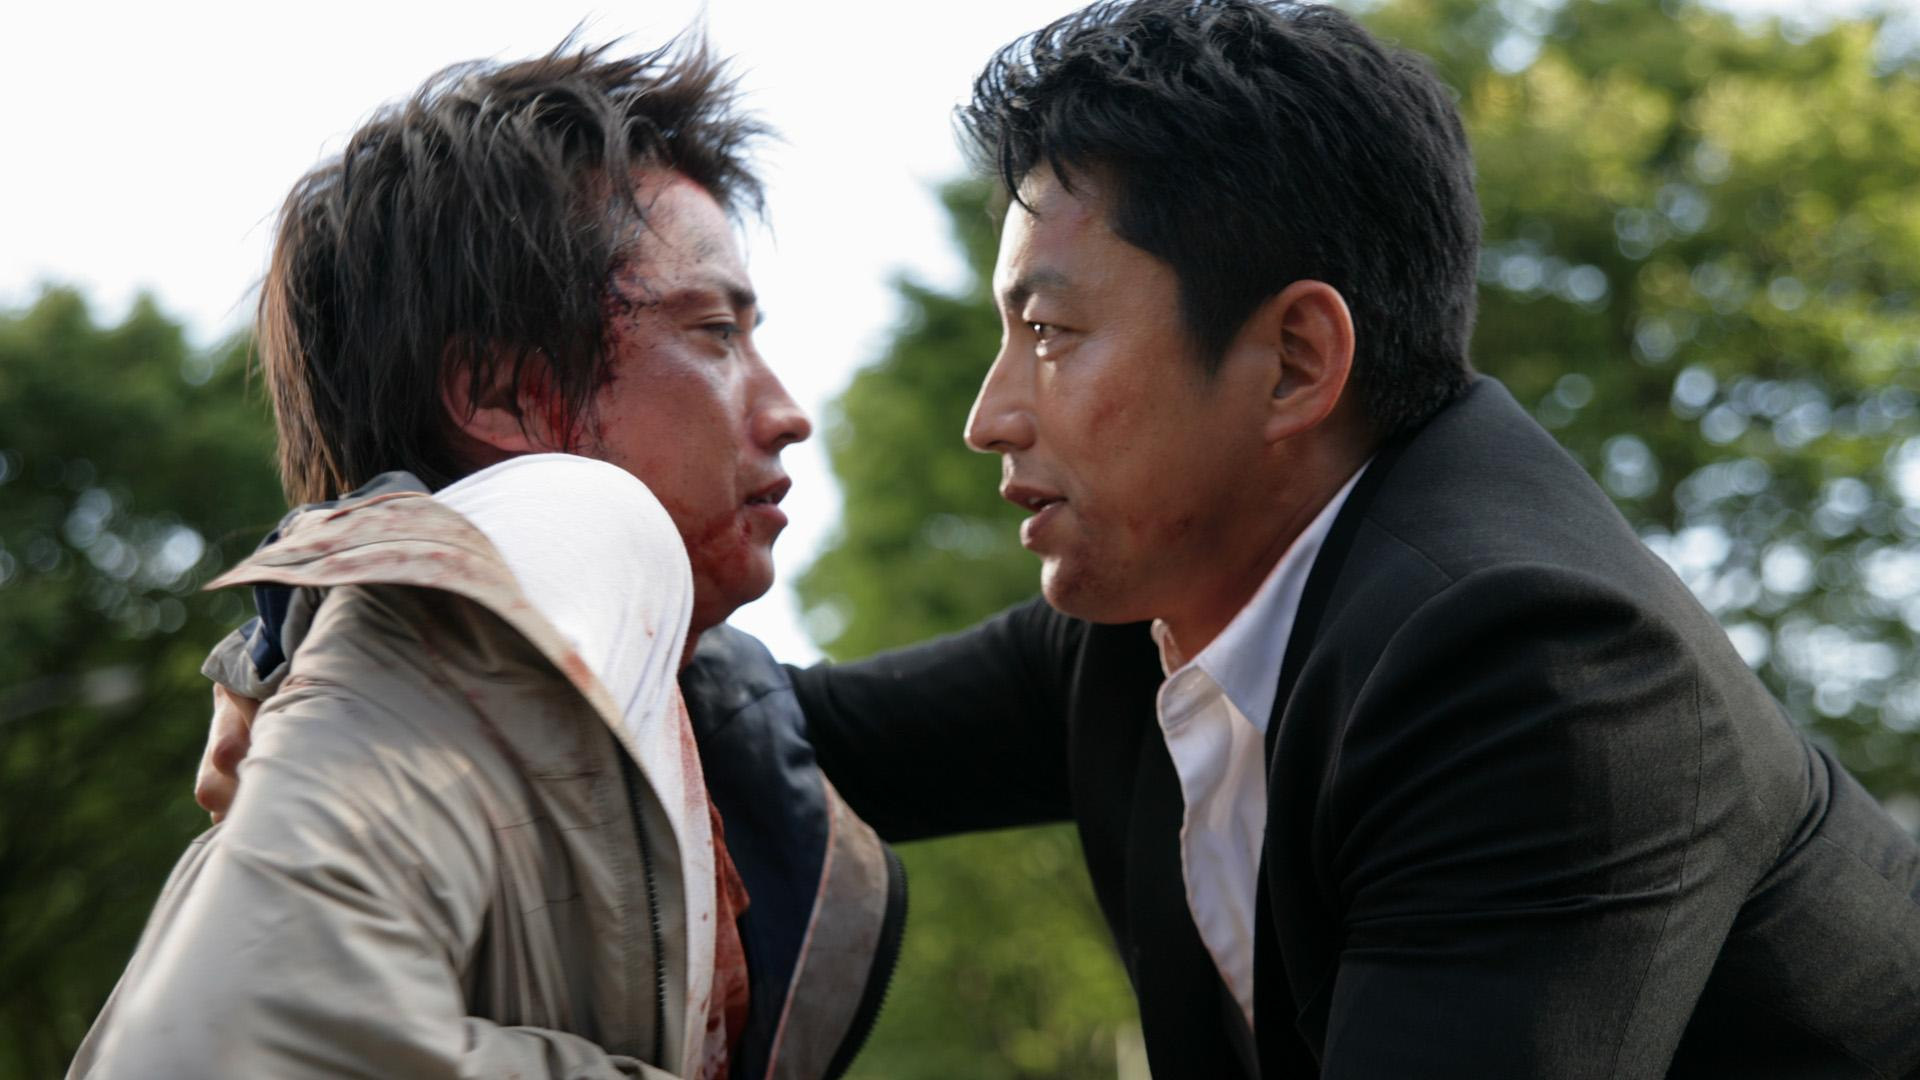 Shield of Straw (Wara No Tate), de Takashi Miike – Compétition Officielle